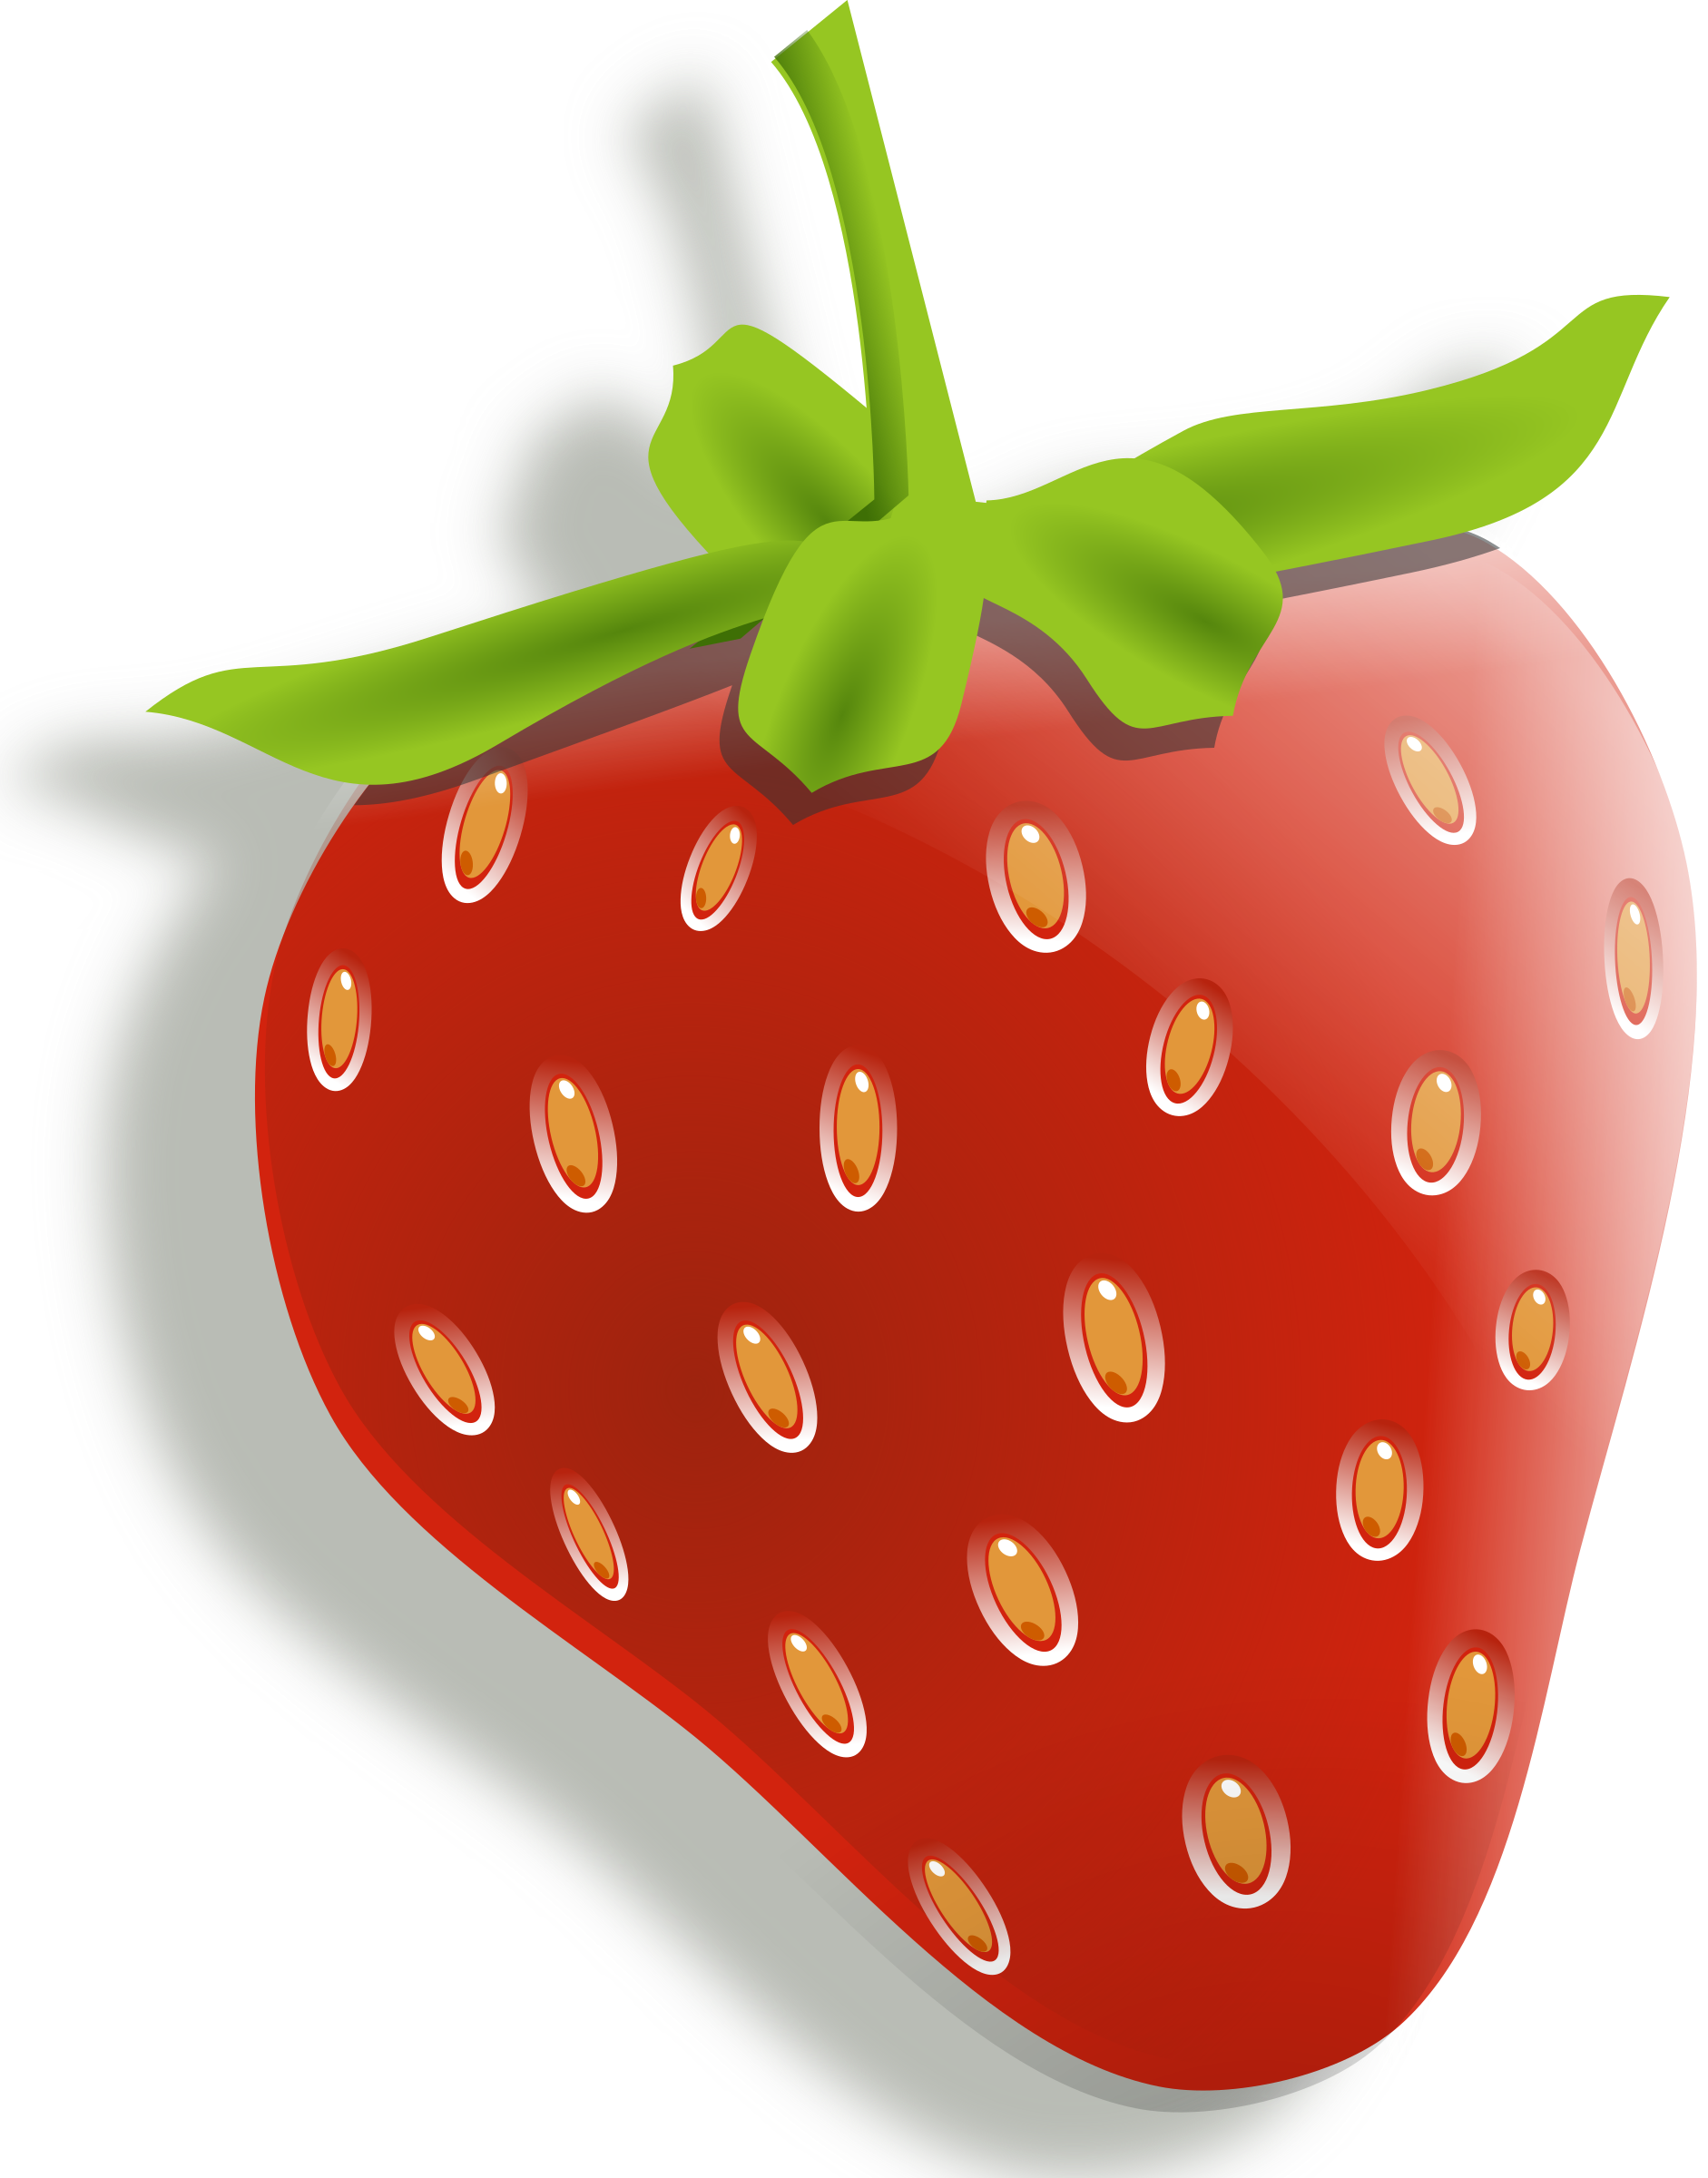 clip art black and white Clipart strawberry big image. Drawing strawberries cartoon